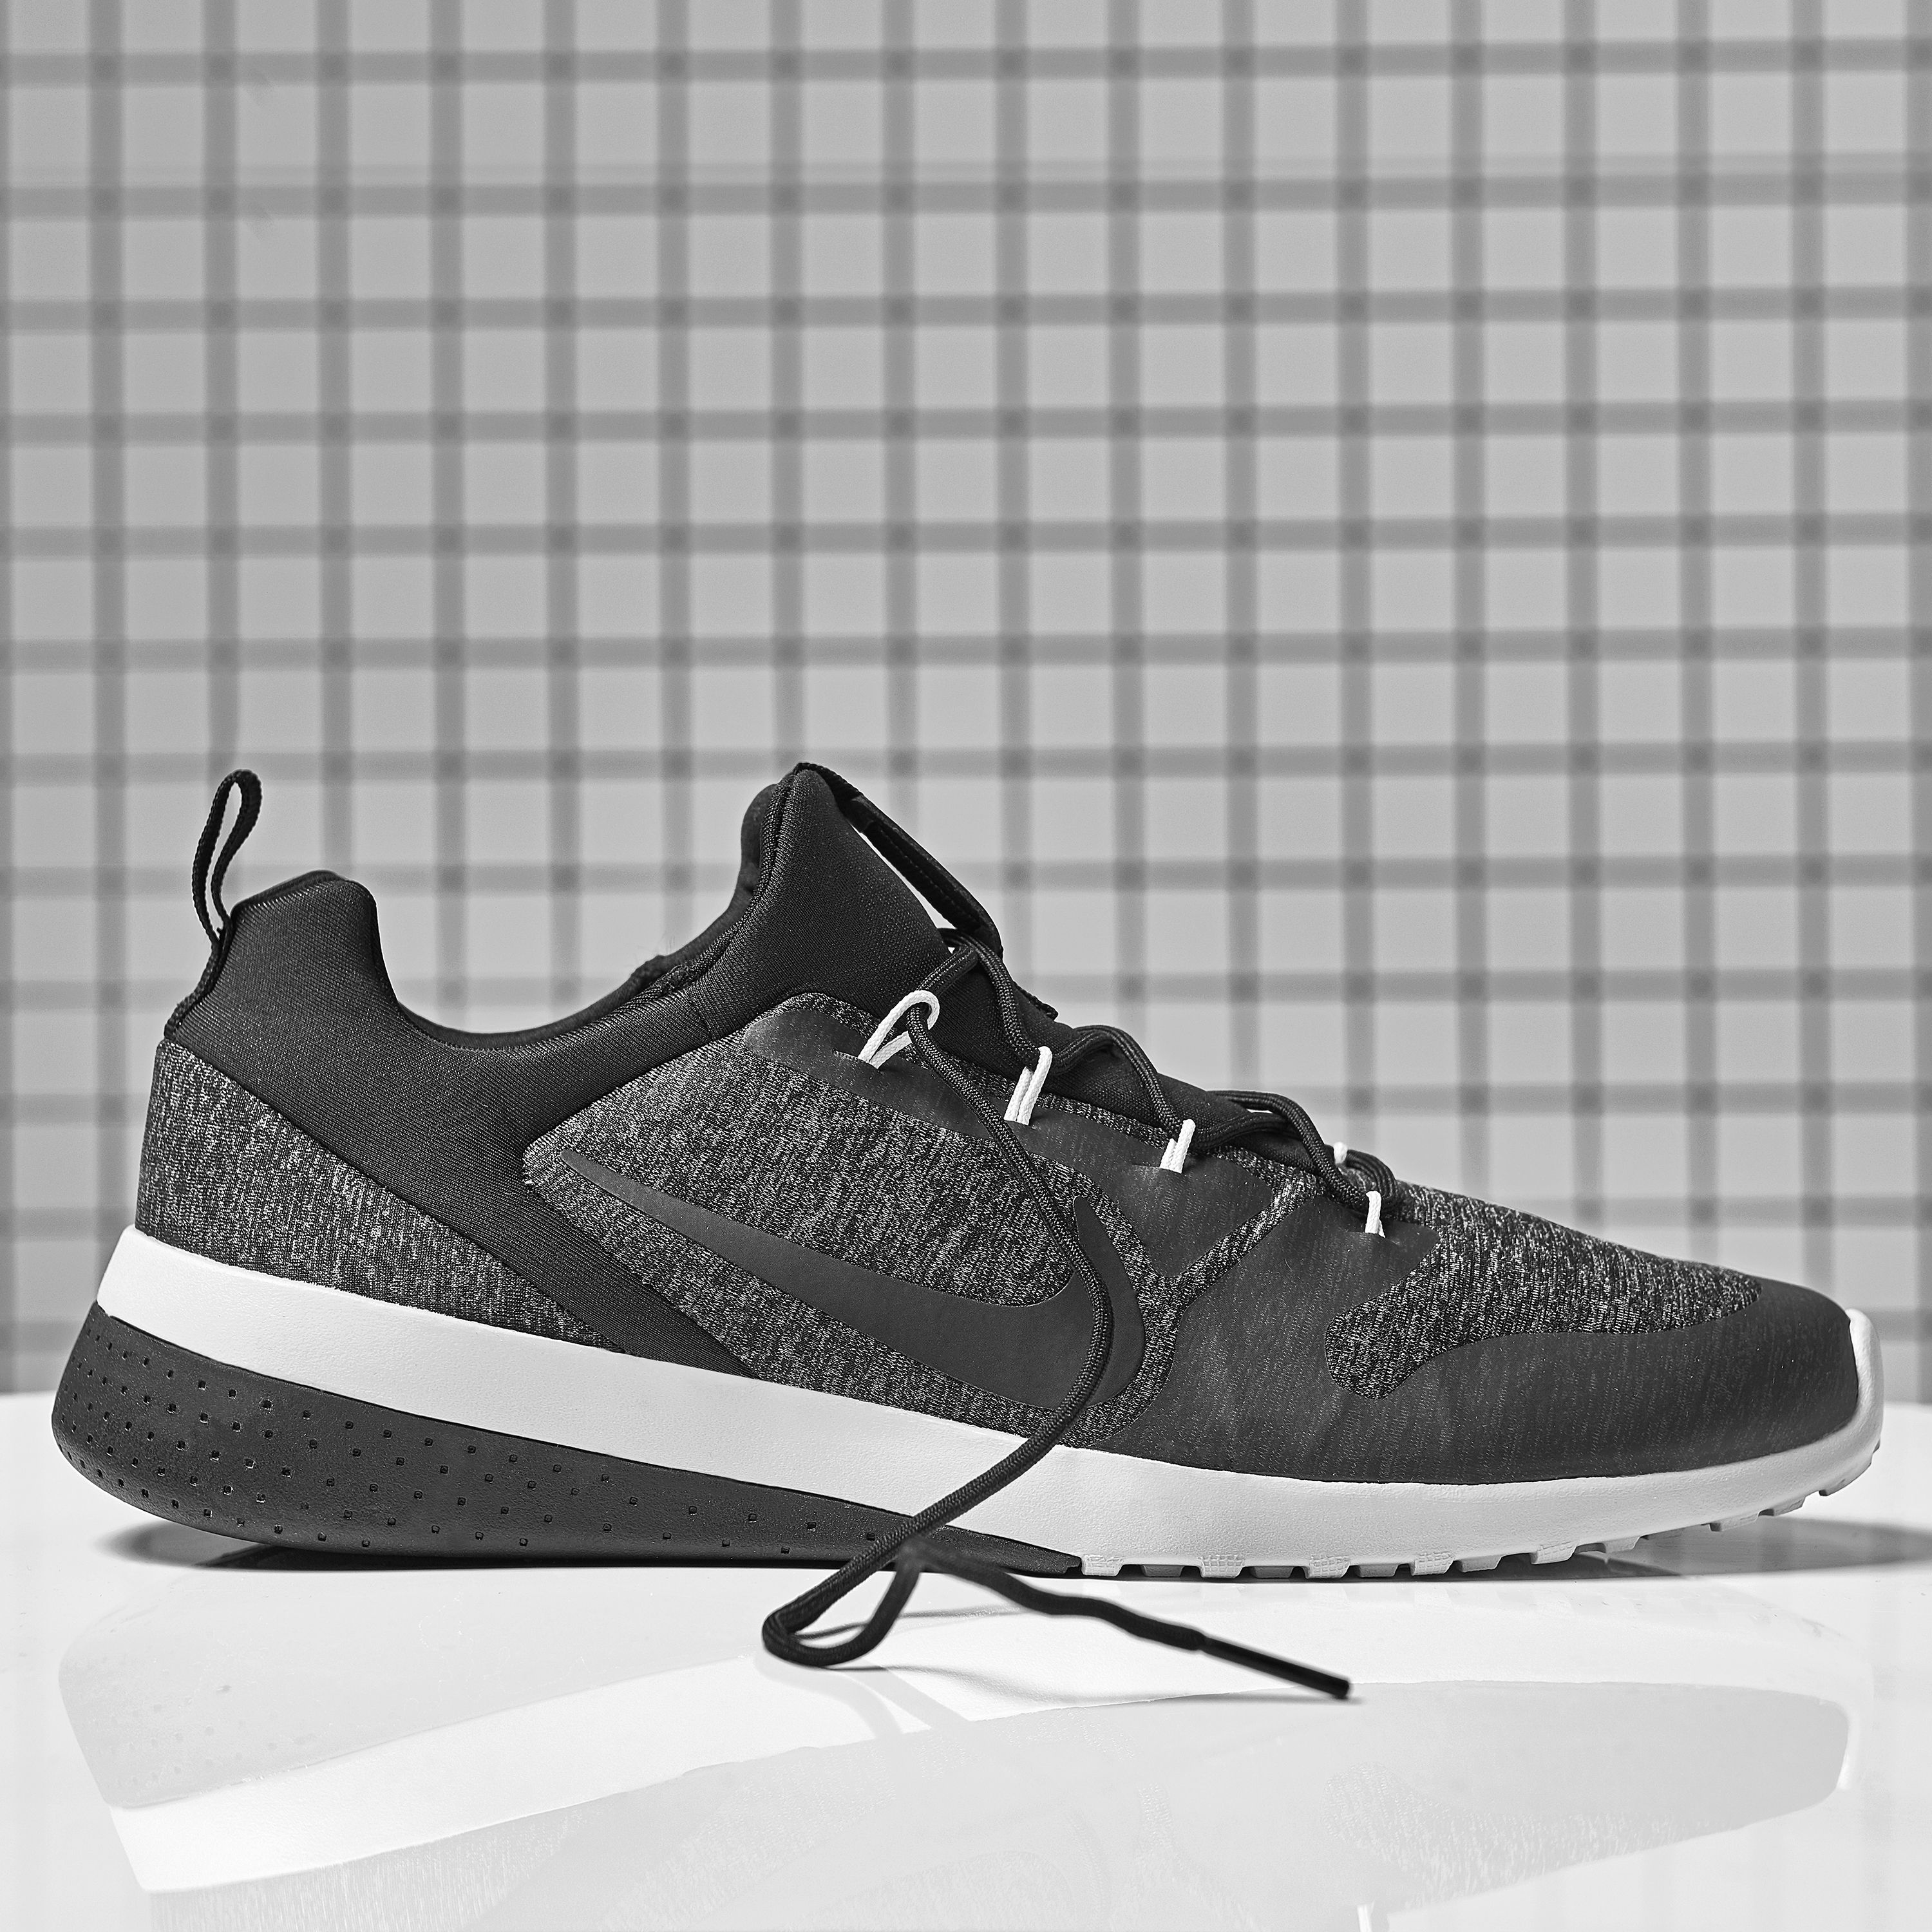 best loved 83899 7e1a9 Prepare for a big race or to reach new goals with the Nike CK Racer trainers